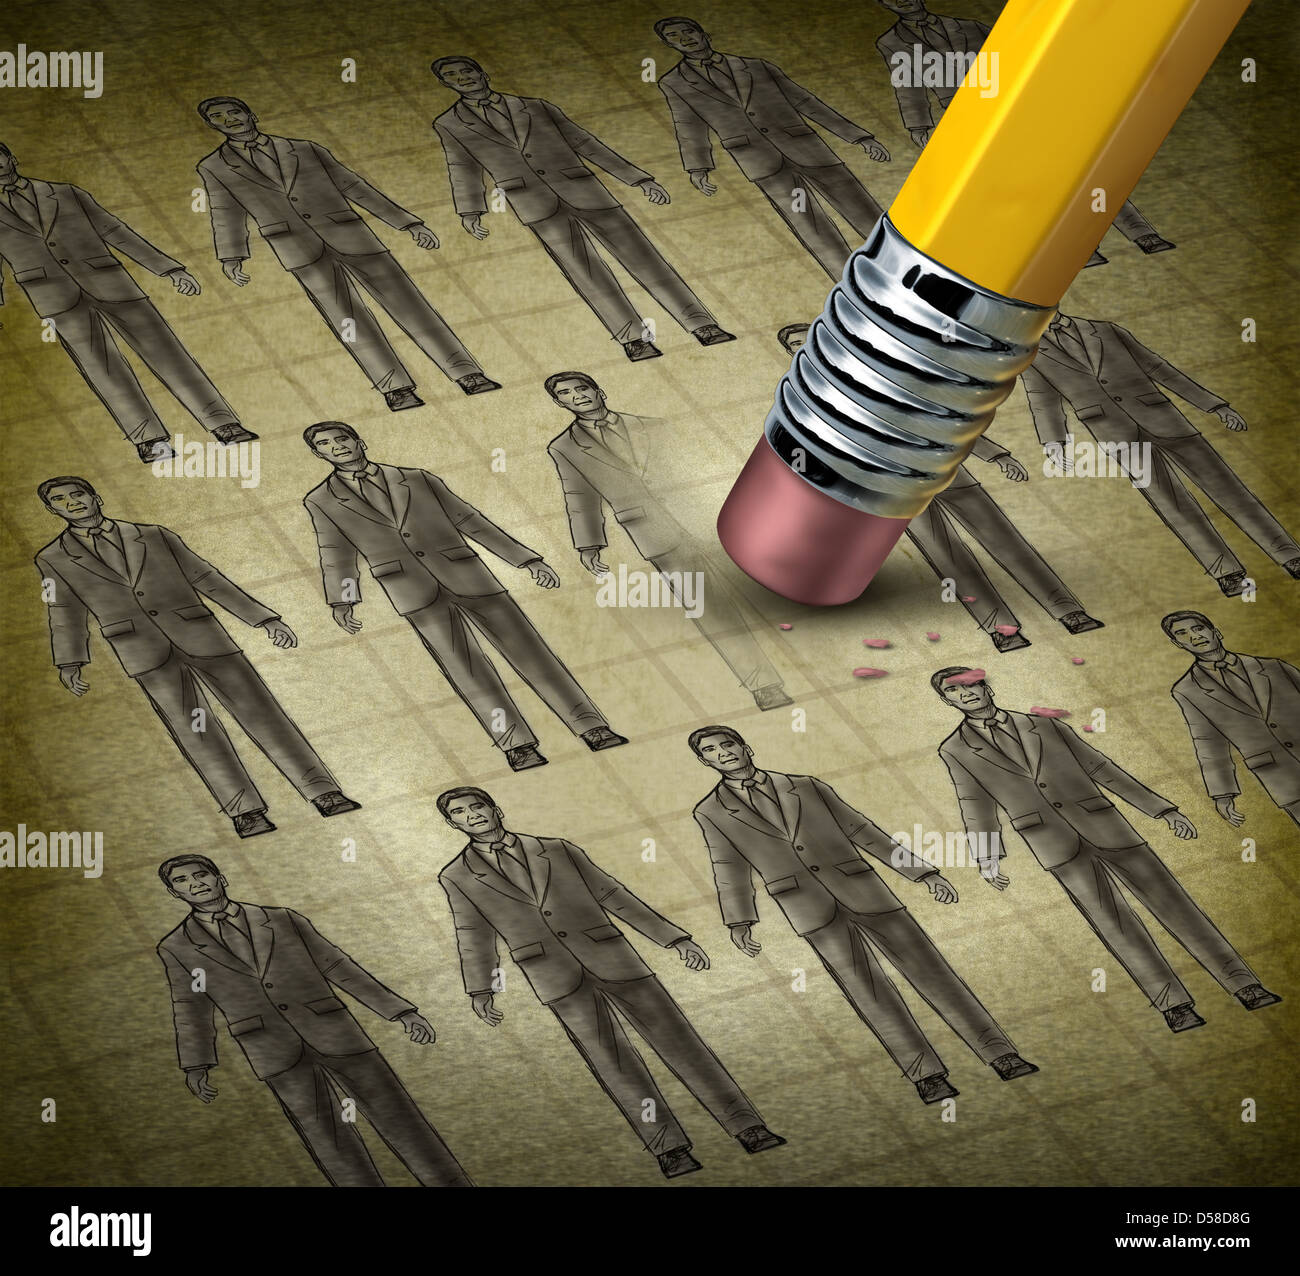 Cutting staff and employee job reduction concept reducing costs at a business with a grunge texture image of business Stock Photo